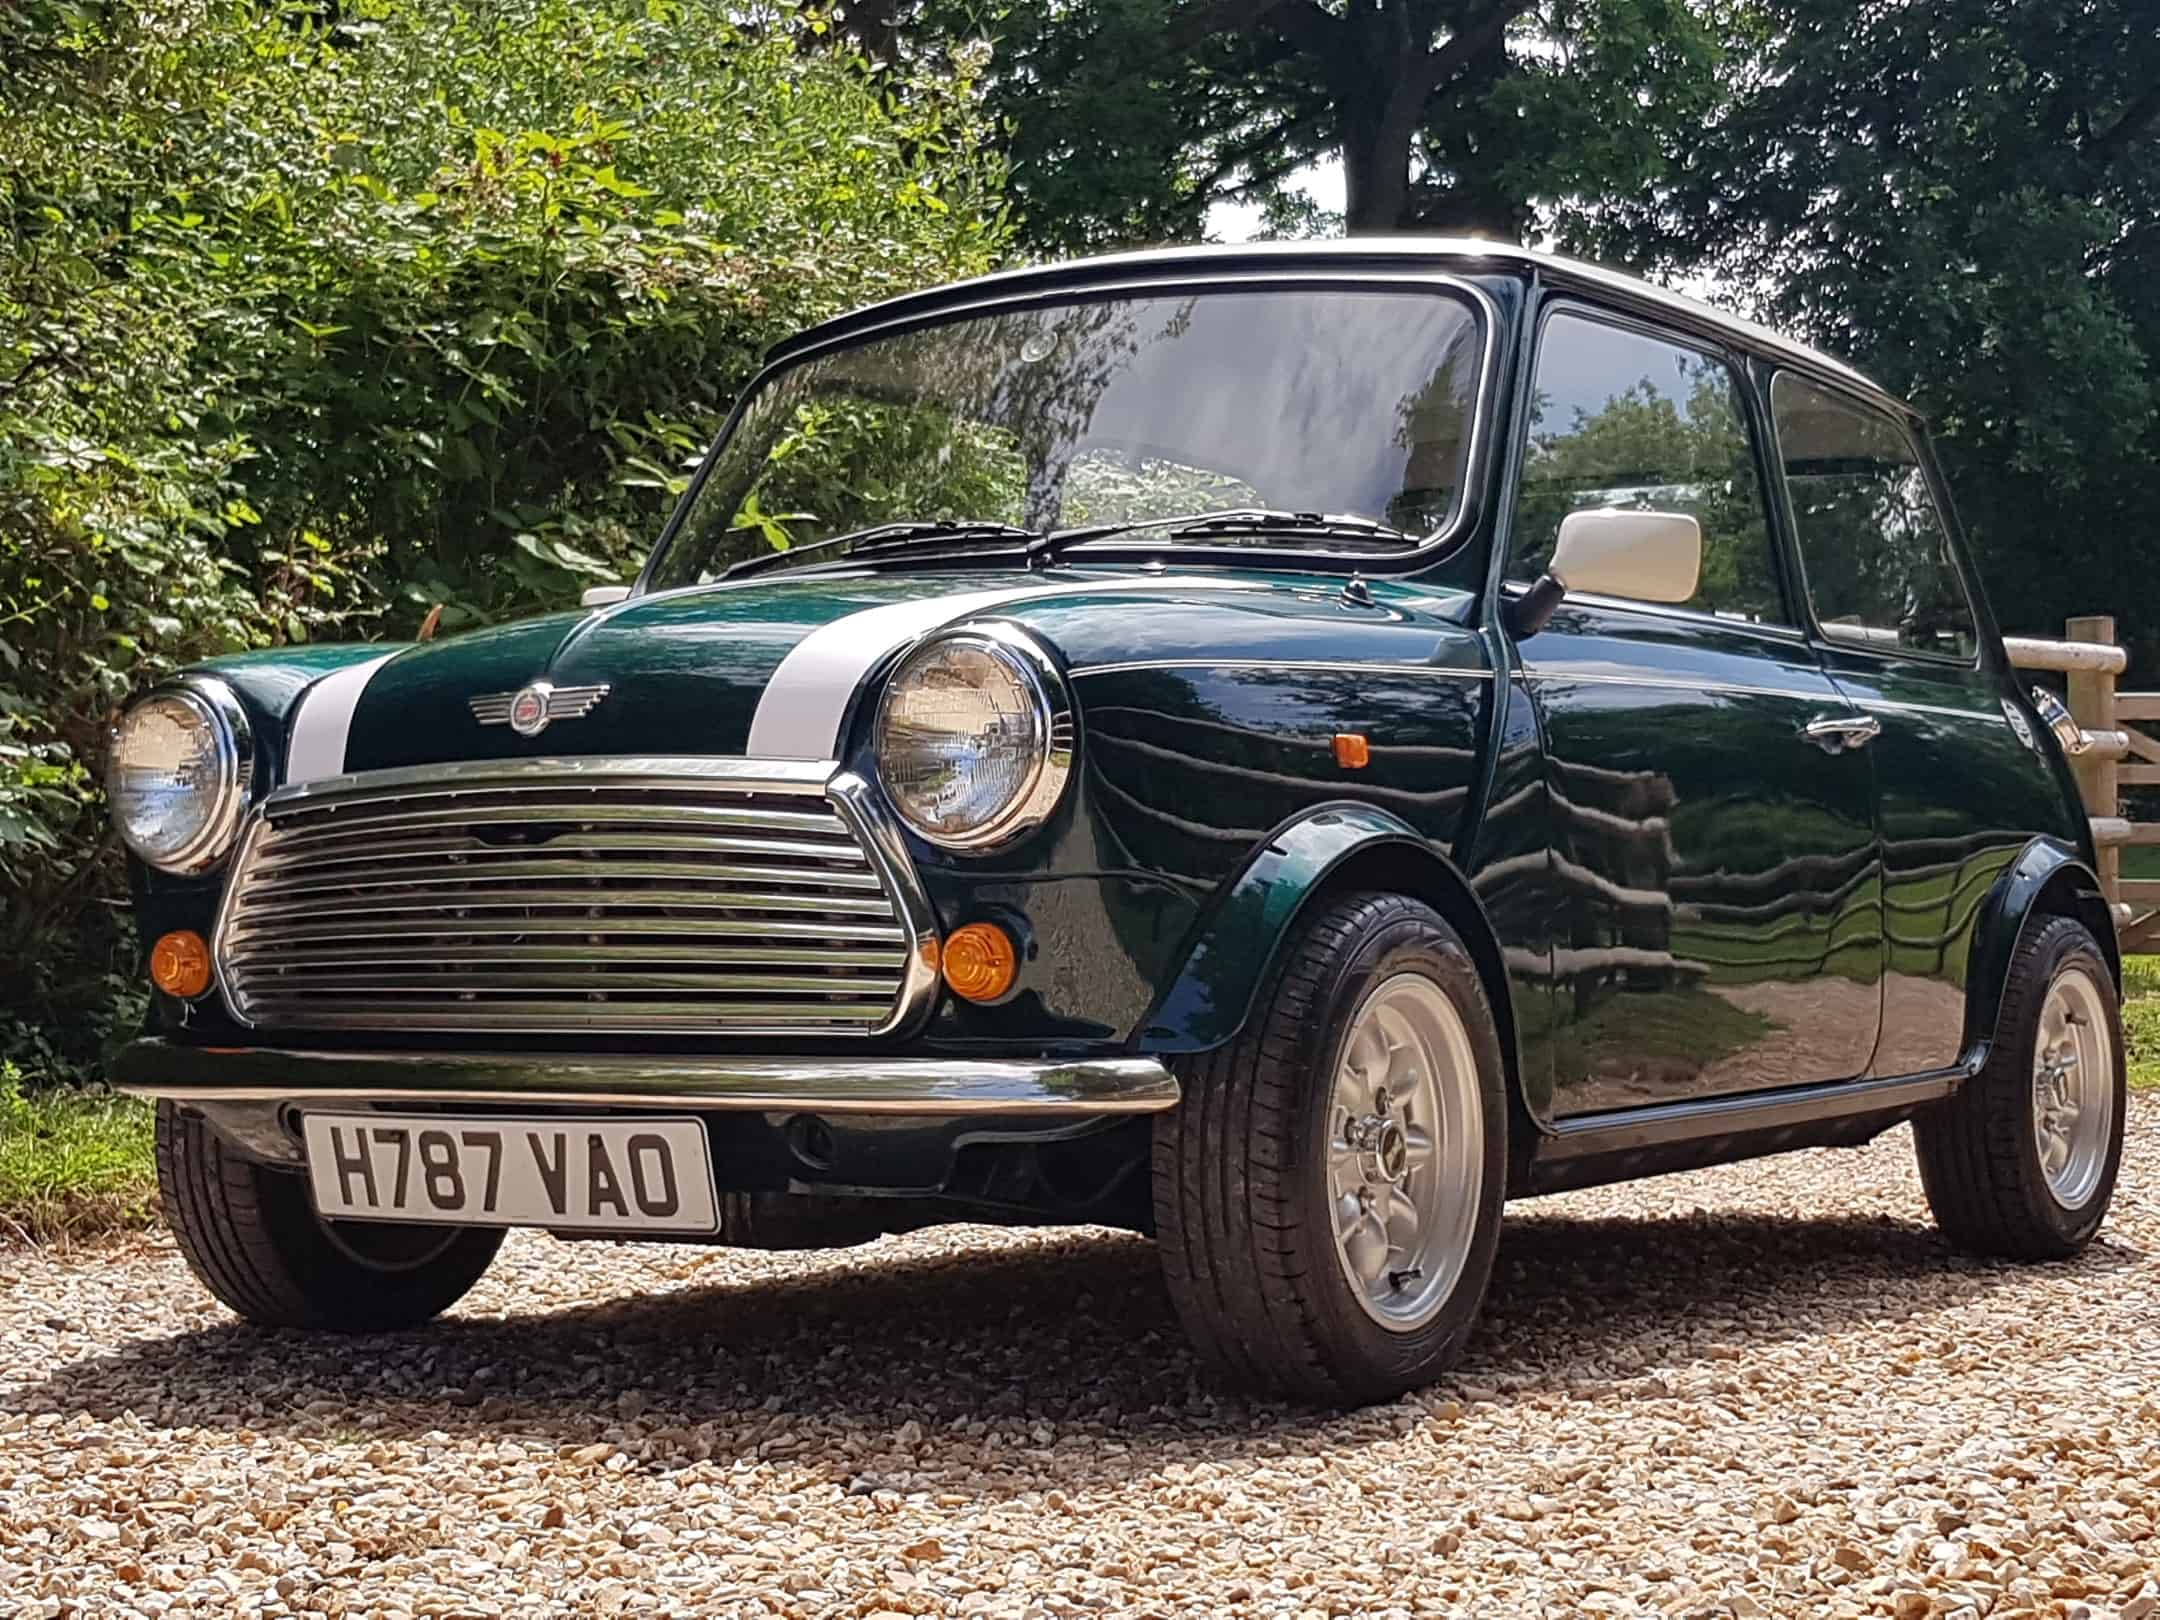 ** NOW SOLD ** 1991 Mini Cooper On Just 23800 Miles From New!